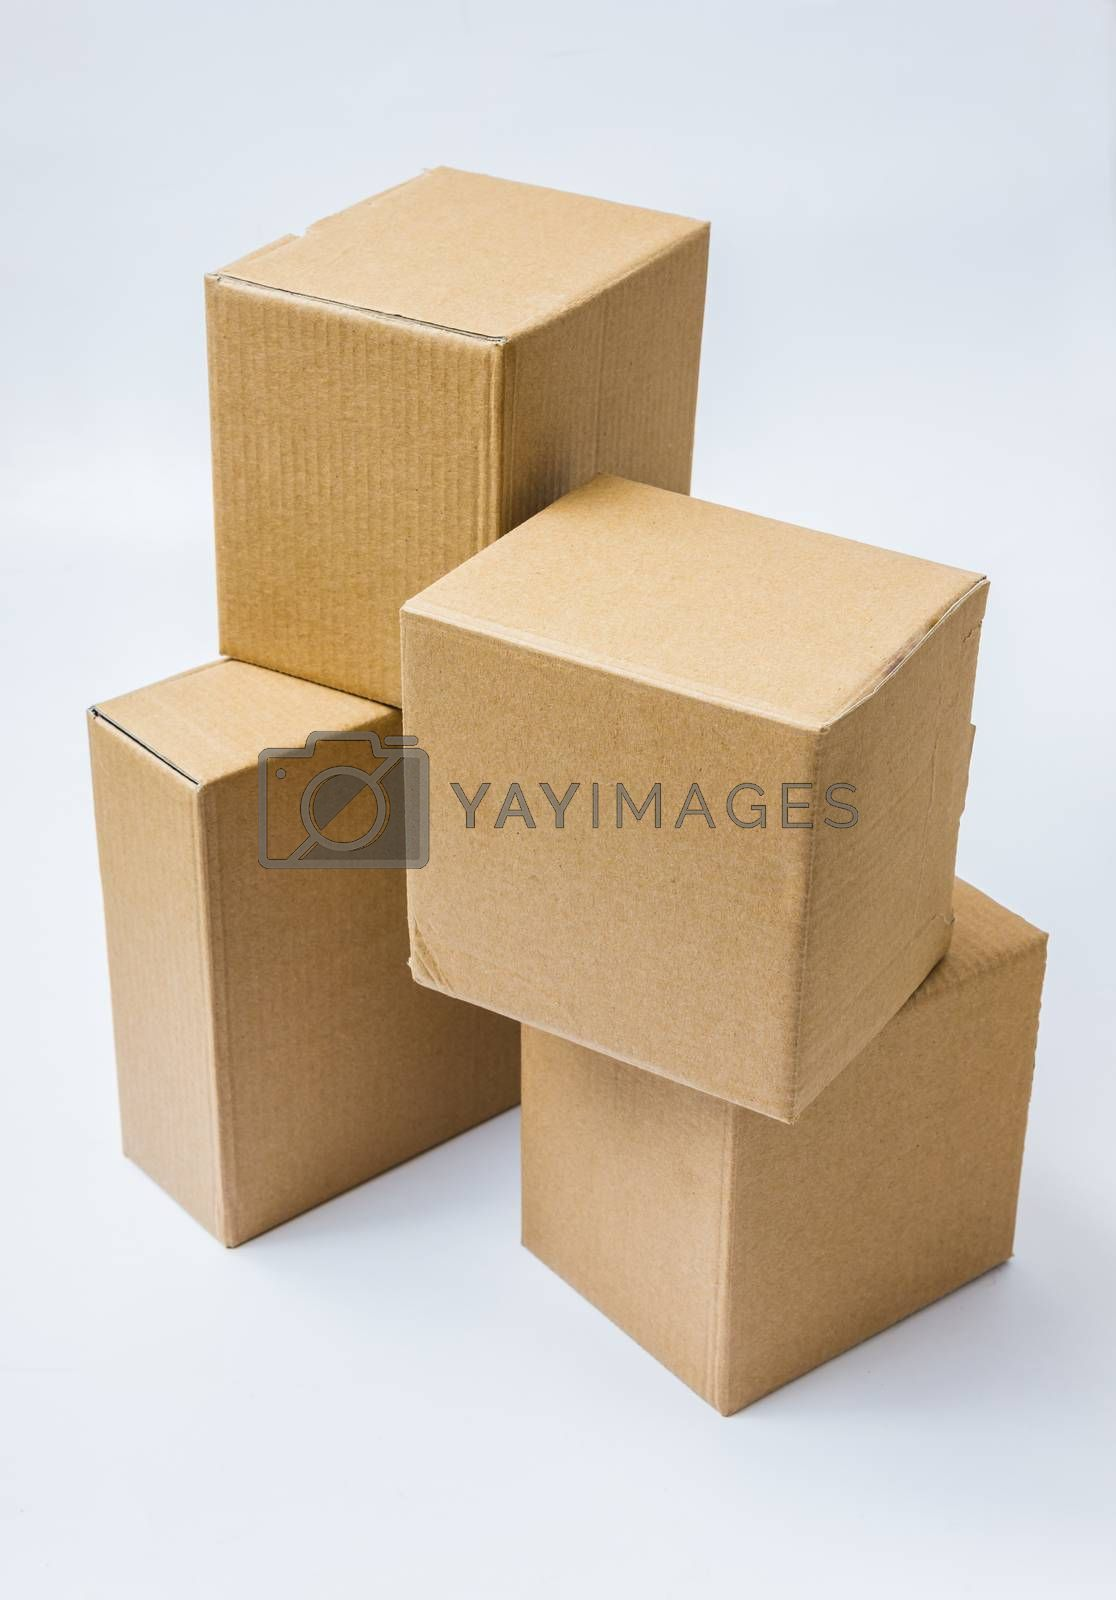 Royalty free image of Cardboard boxes for goods and products by oleg_zhukov